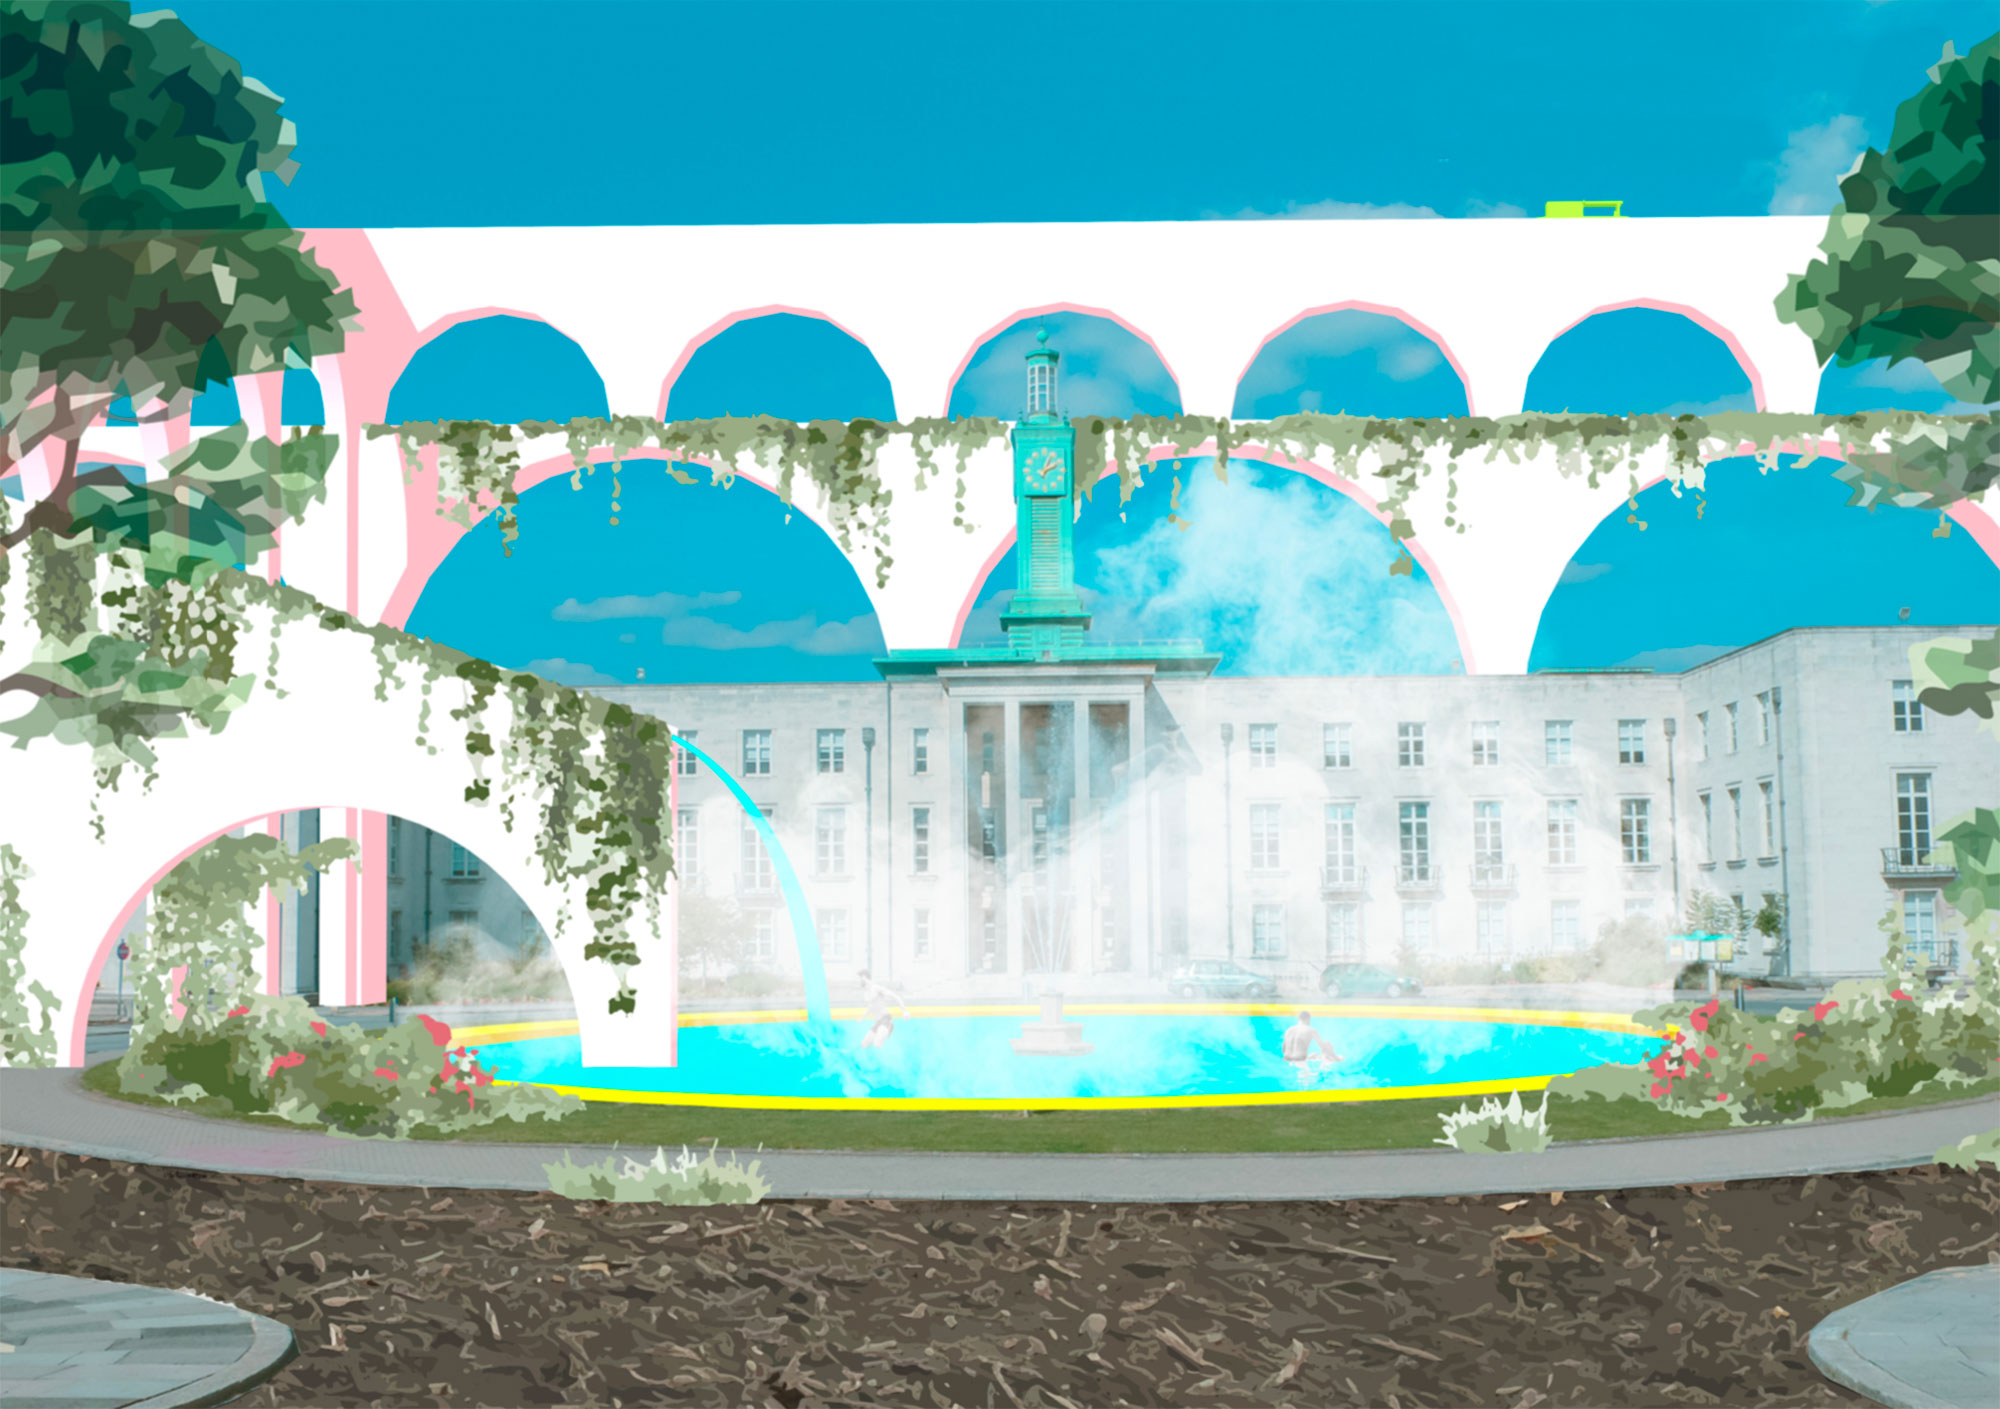 A communal baths outside the City Hall is one of a series of imagined interventions that create a new journey through the borough.